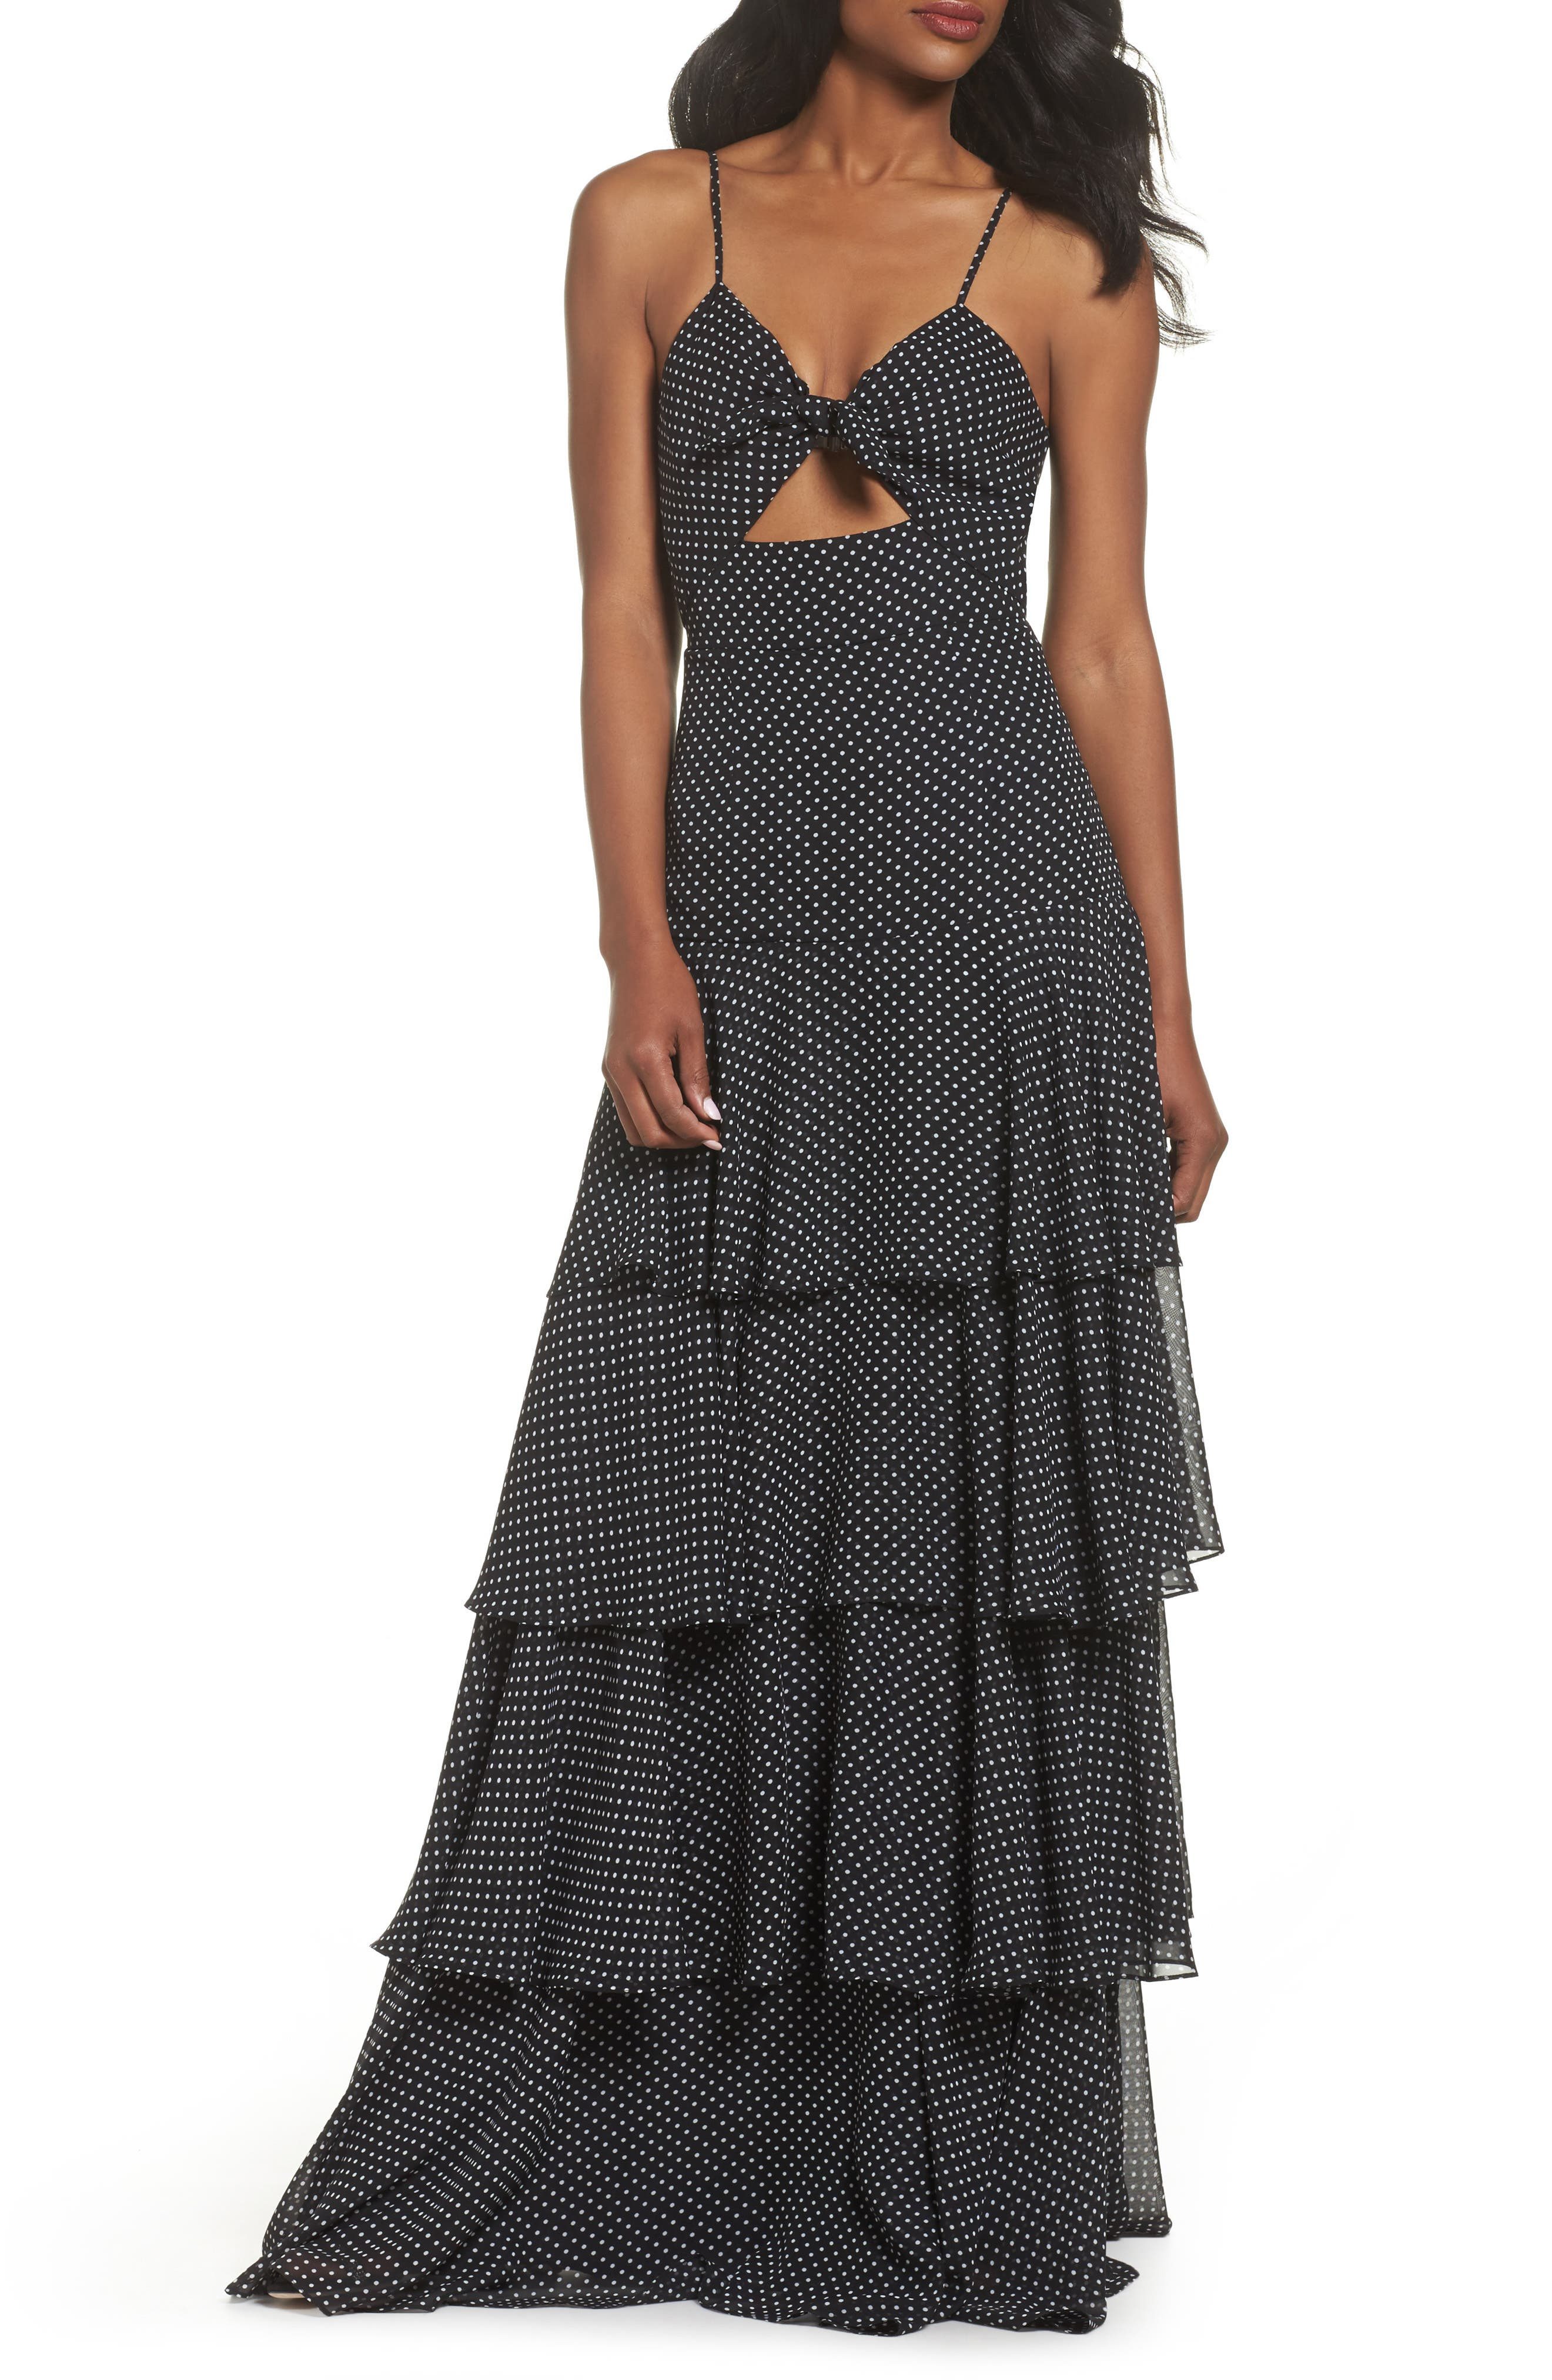 Polka Dot Tiered Gown,                             Main thumbnail 1, color,                             Black/ White